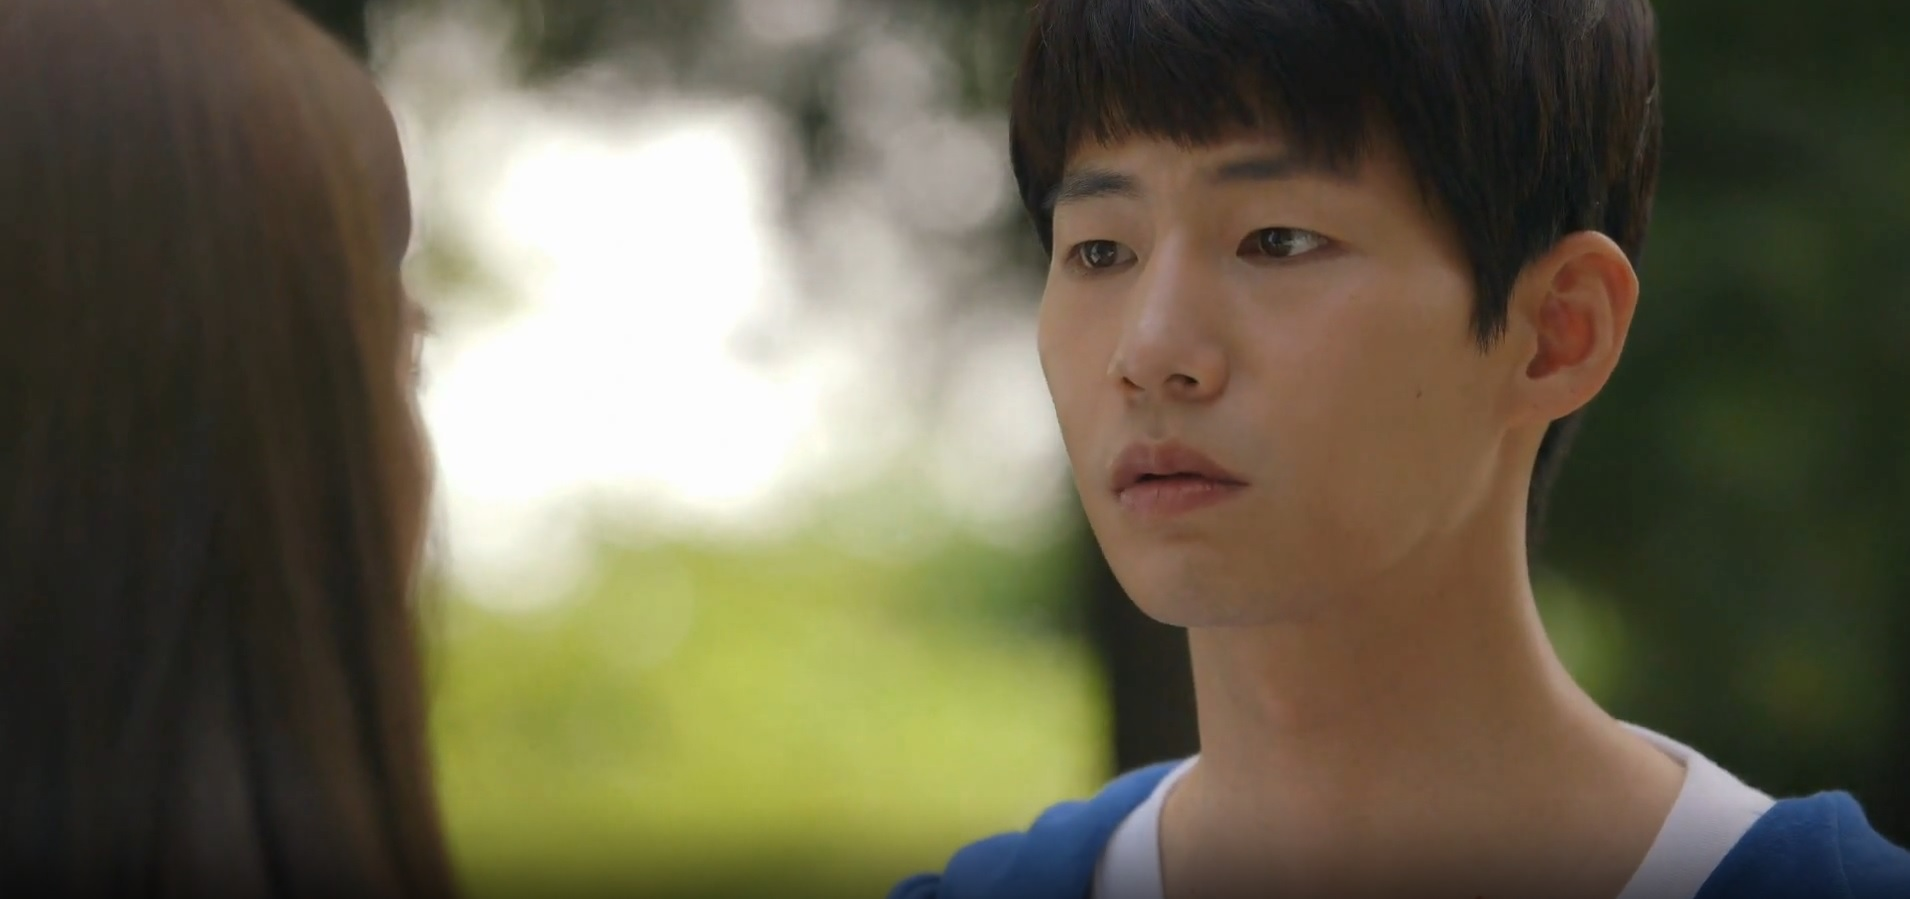 Our Gap Soon Episode 2